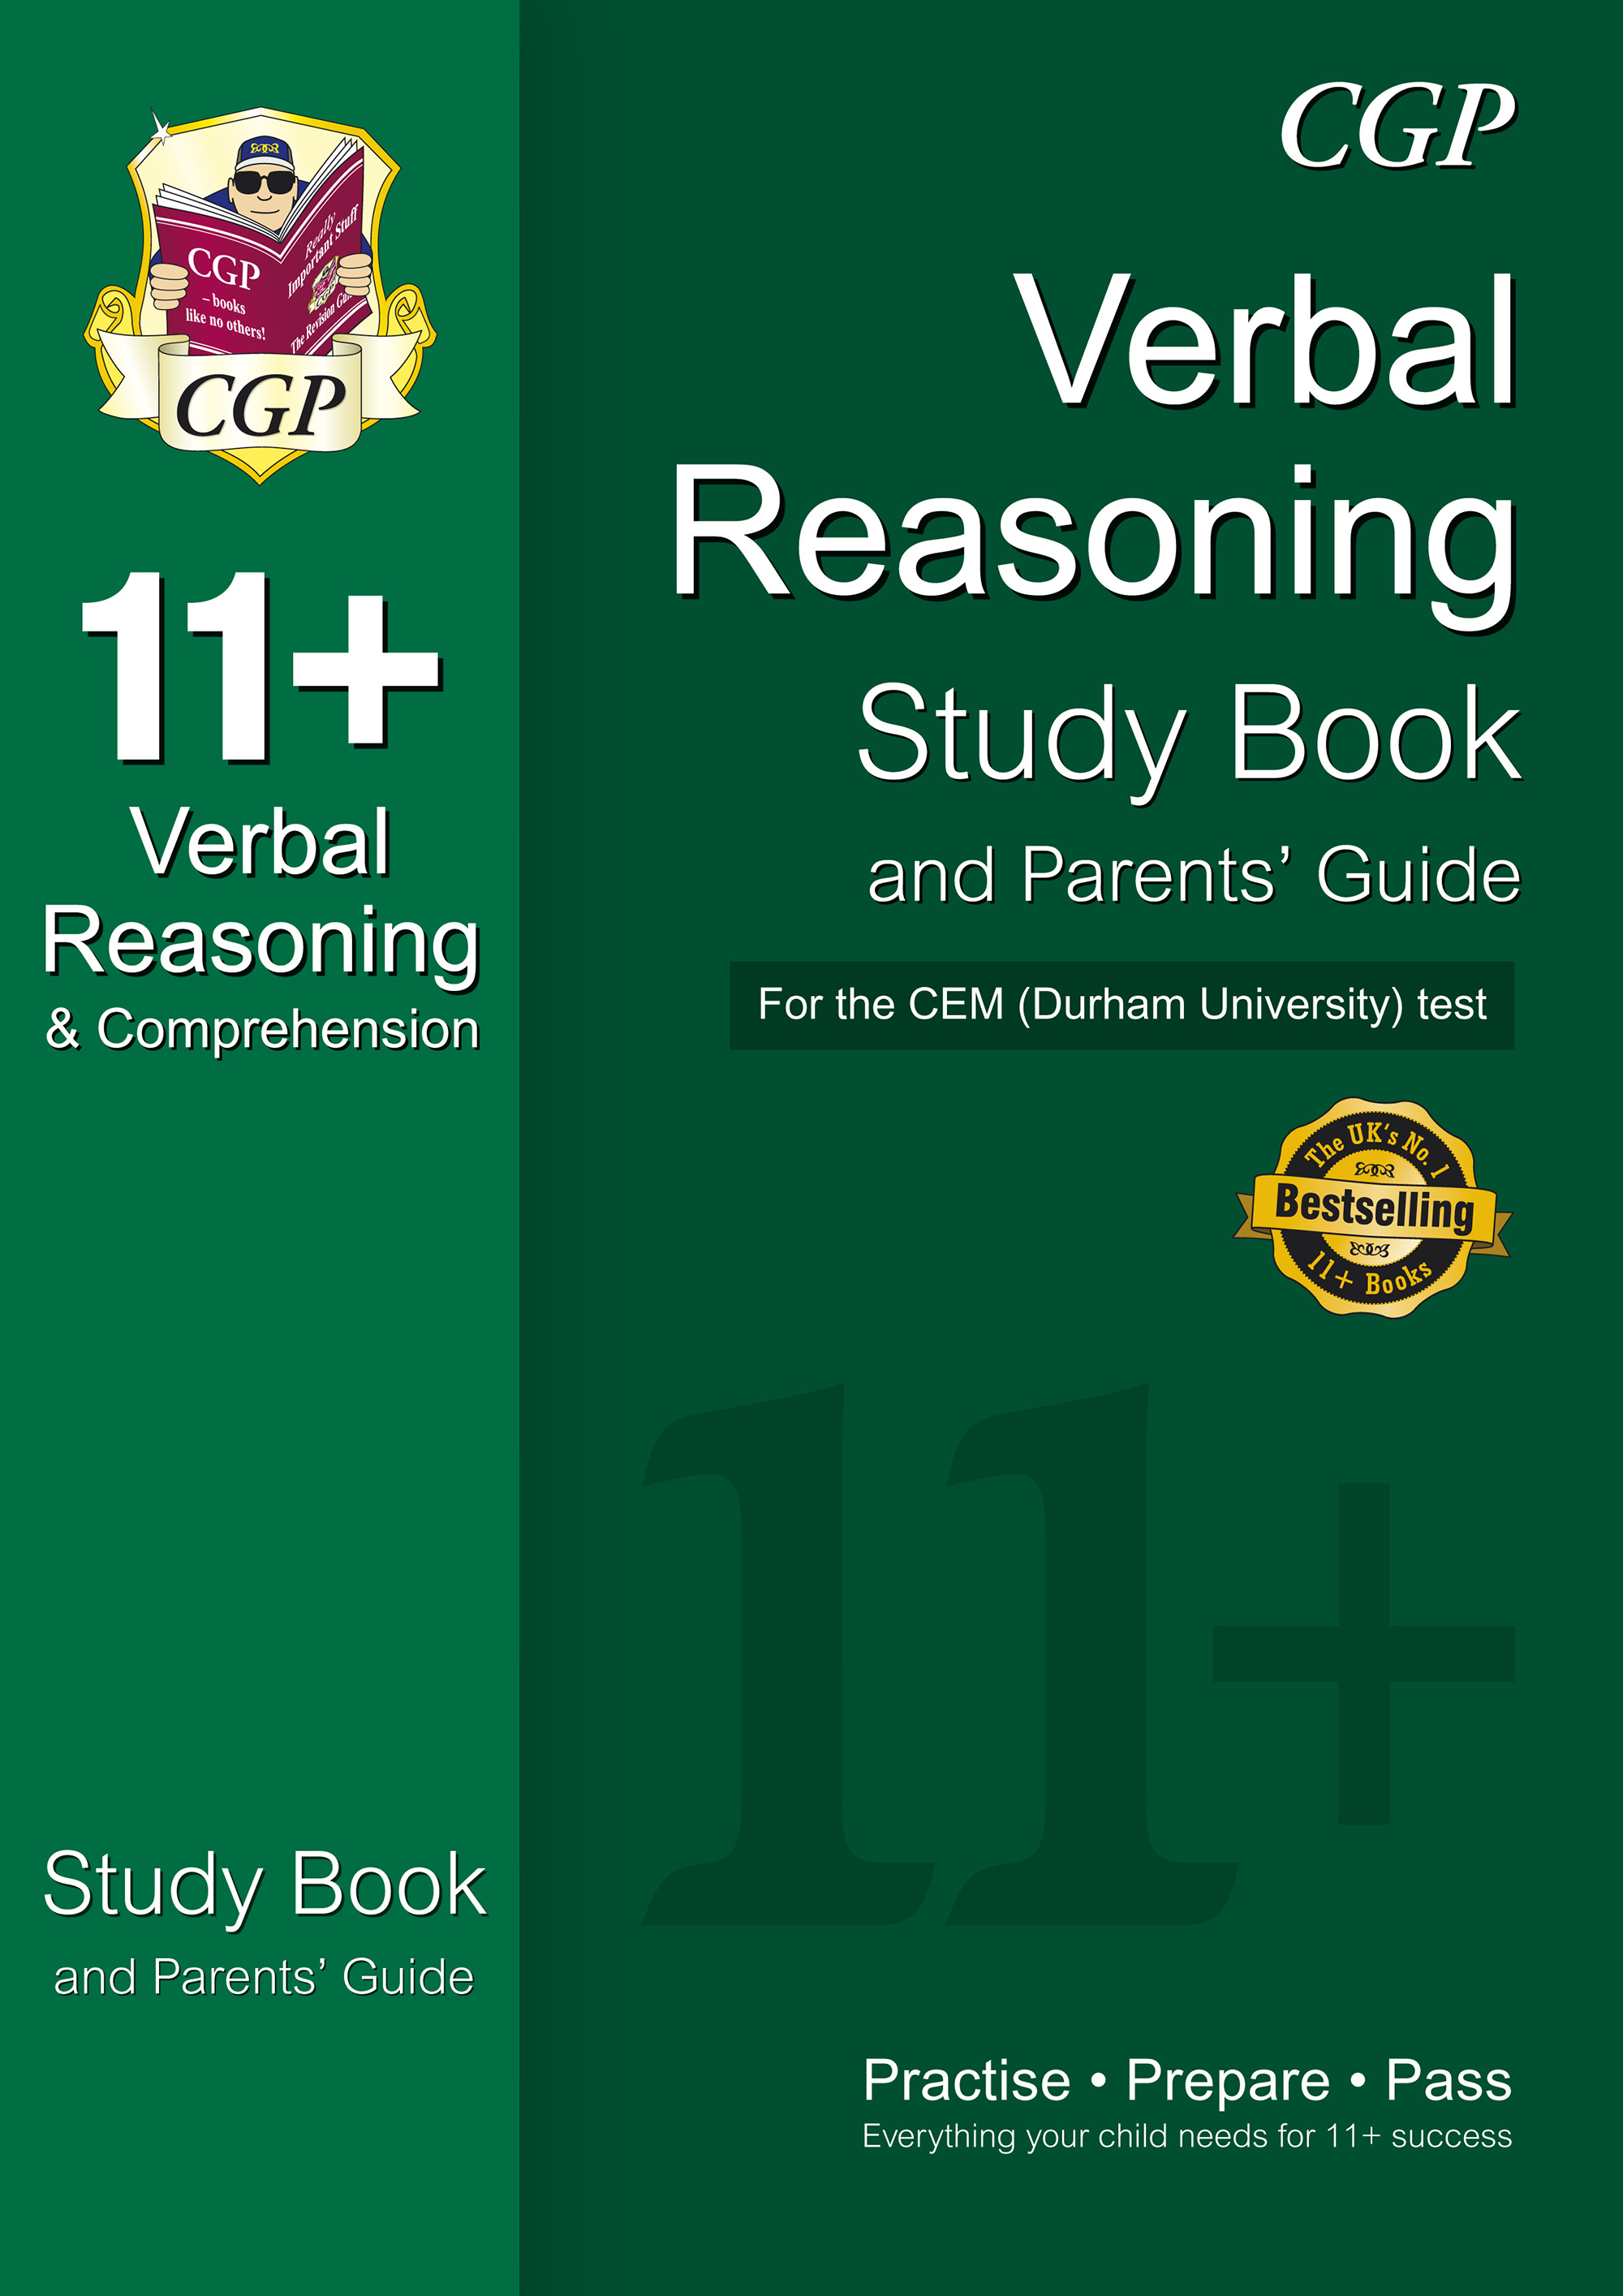 VHRDE1 - 11+ Verbal Reasoning Study Book and Parents' Guide for the CEM Test